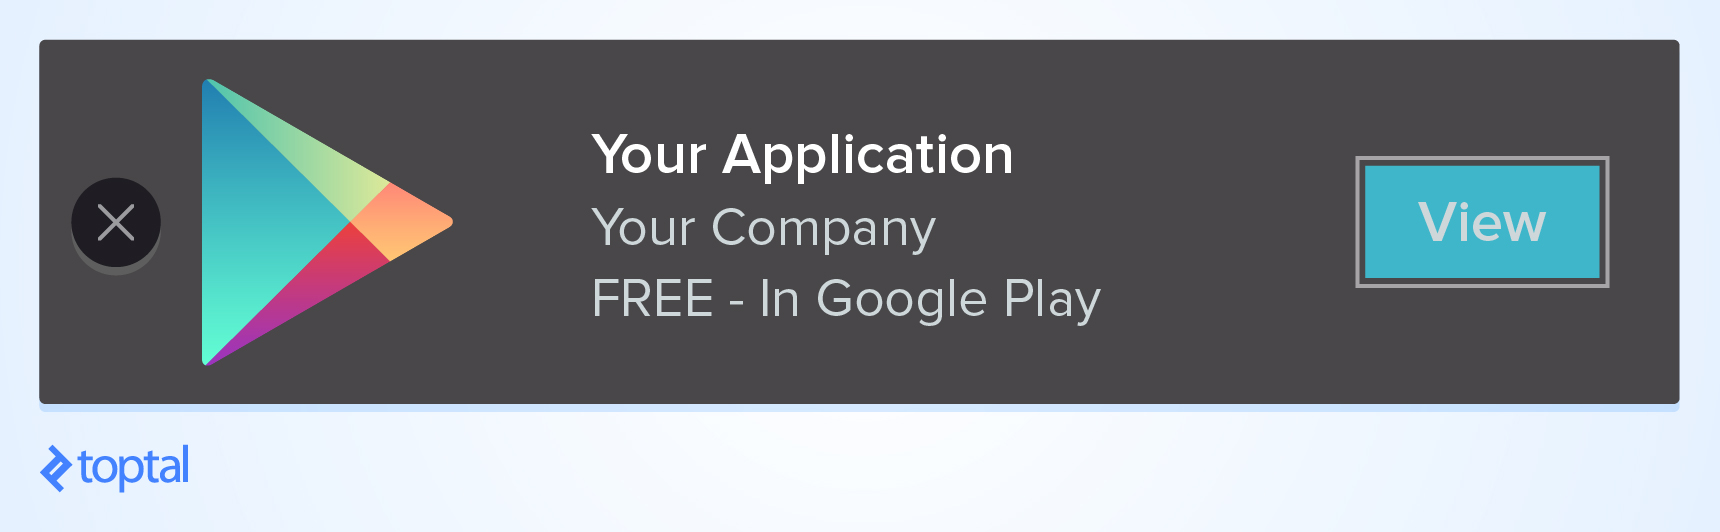 The typical Google Play app banner style.